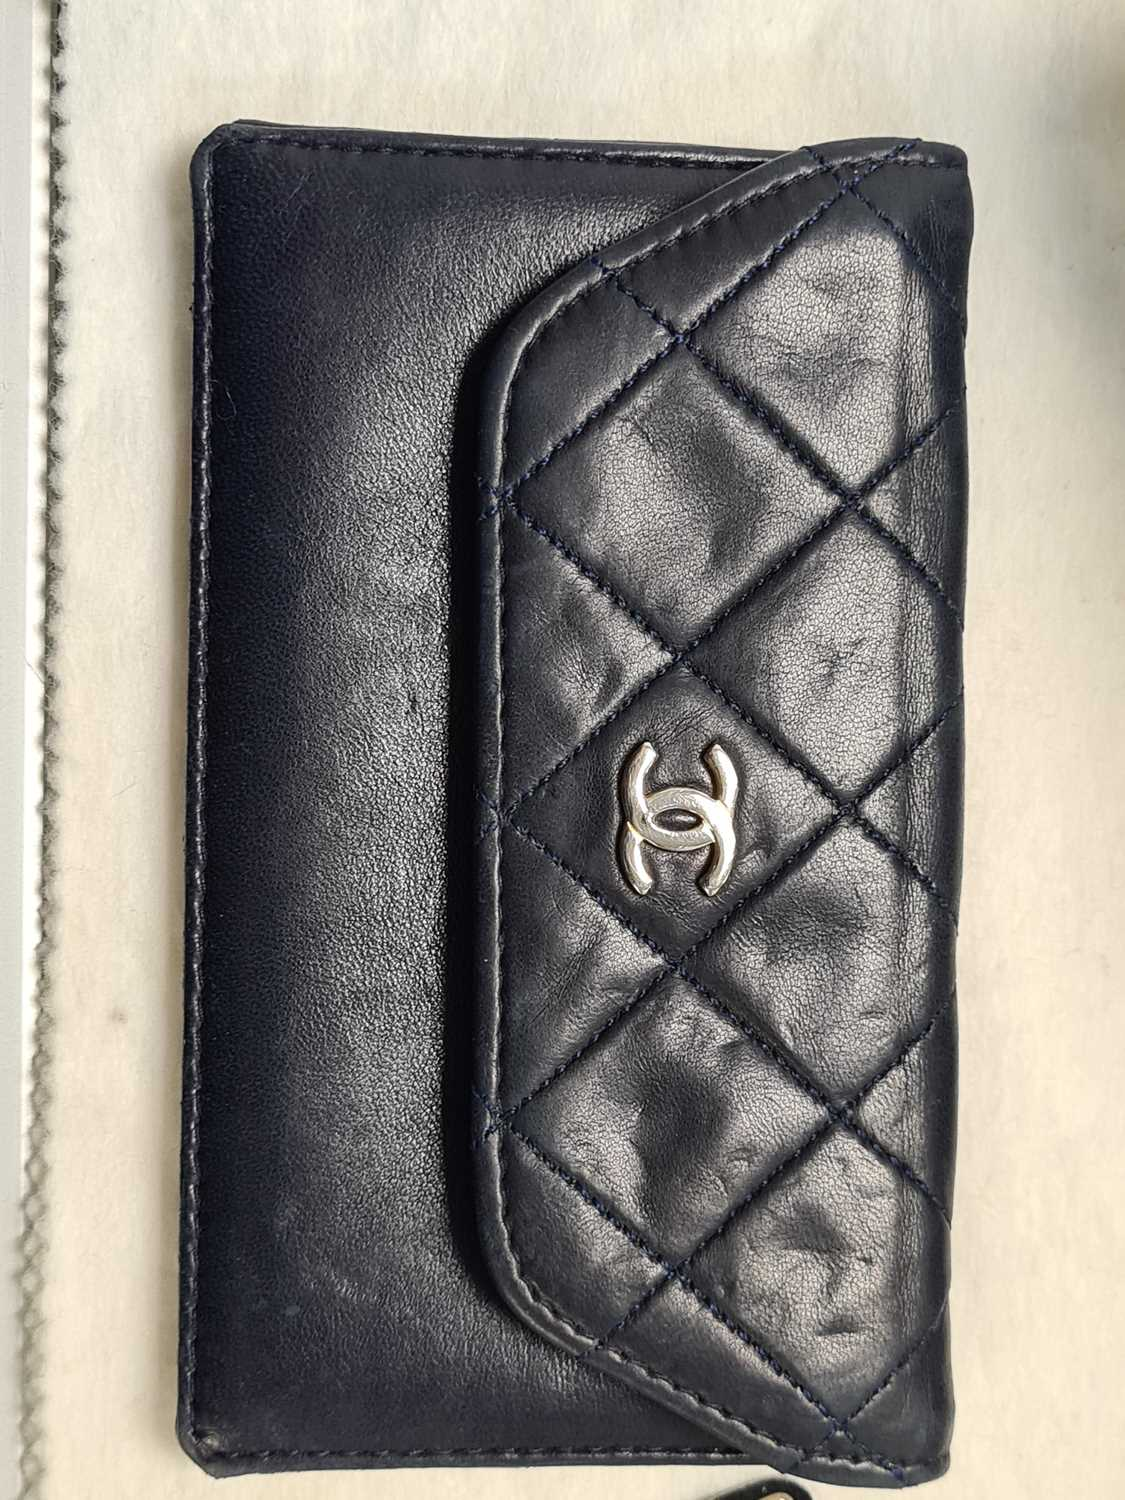 Chanel. A classic quilted leather handbag, of tapered square design, with gold tone CC logo clasp, - Image 19 of 26